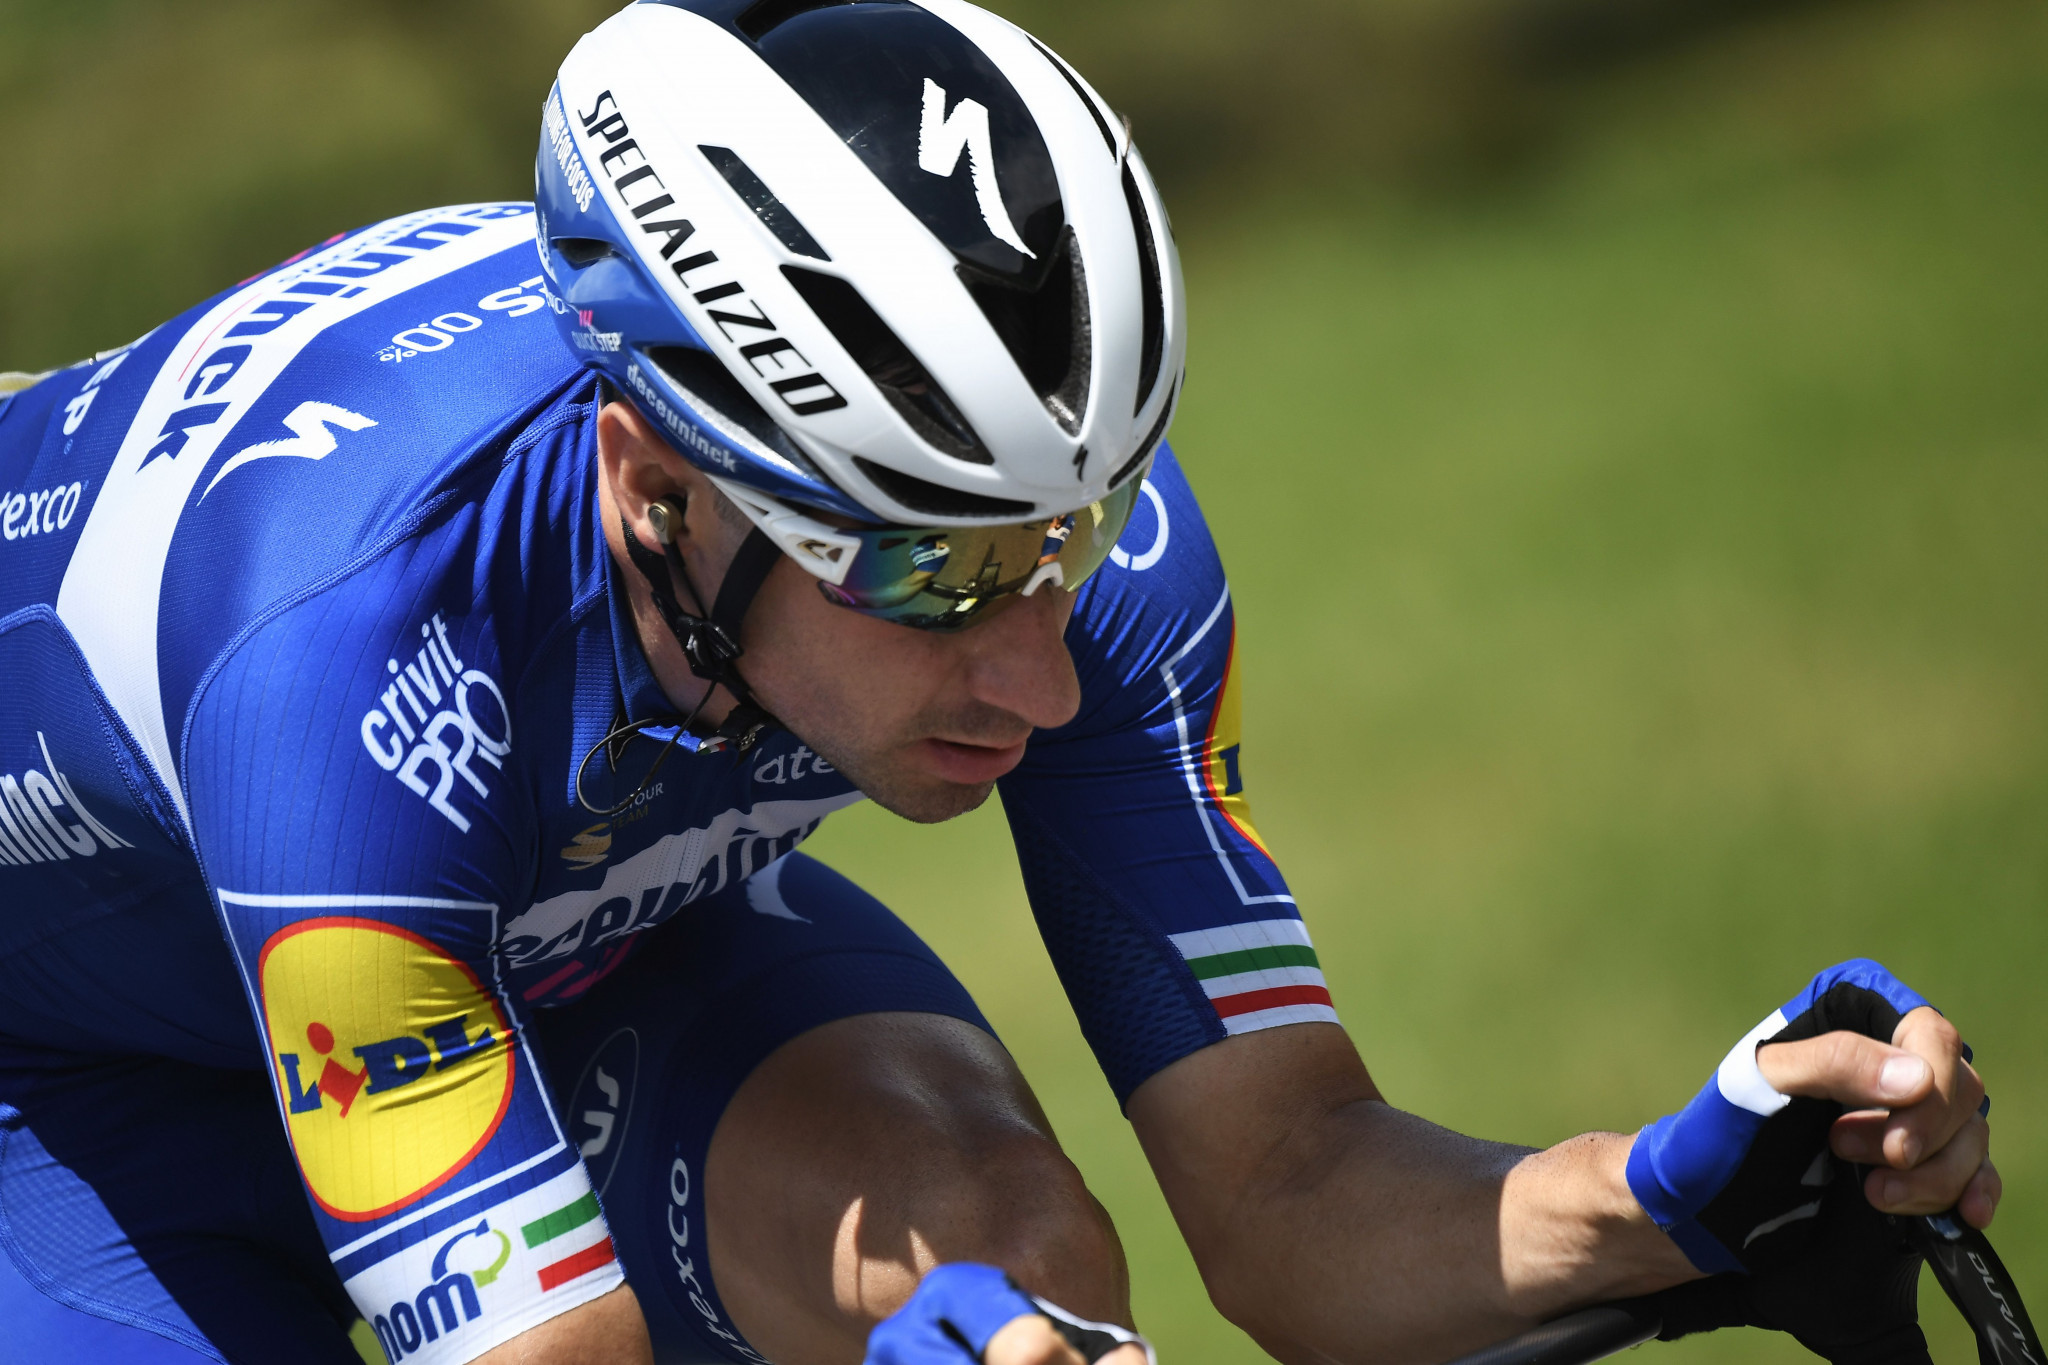 Viviani among star line-up for UEC European Road Cycling Championships